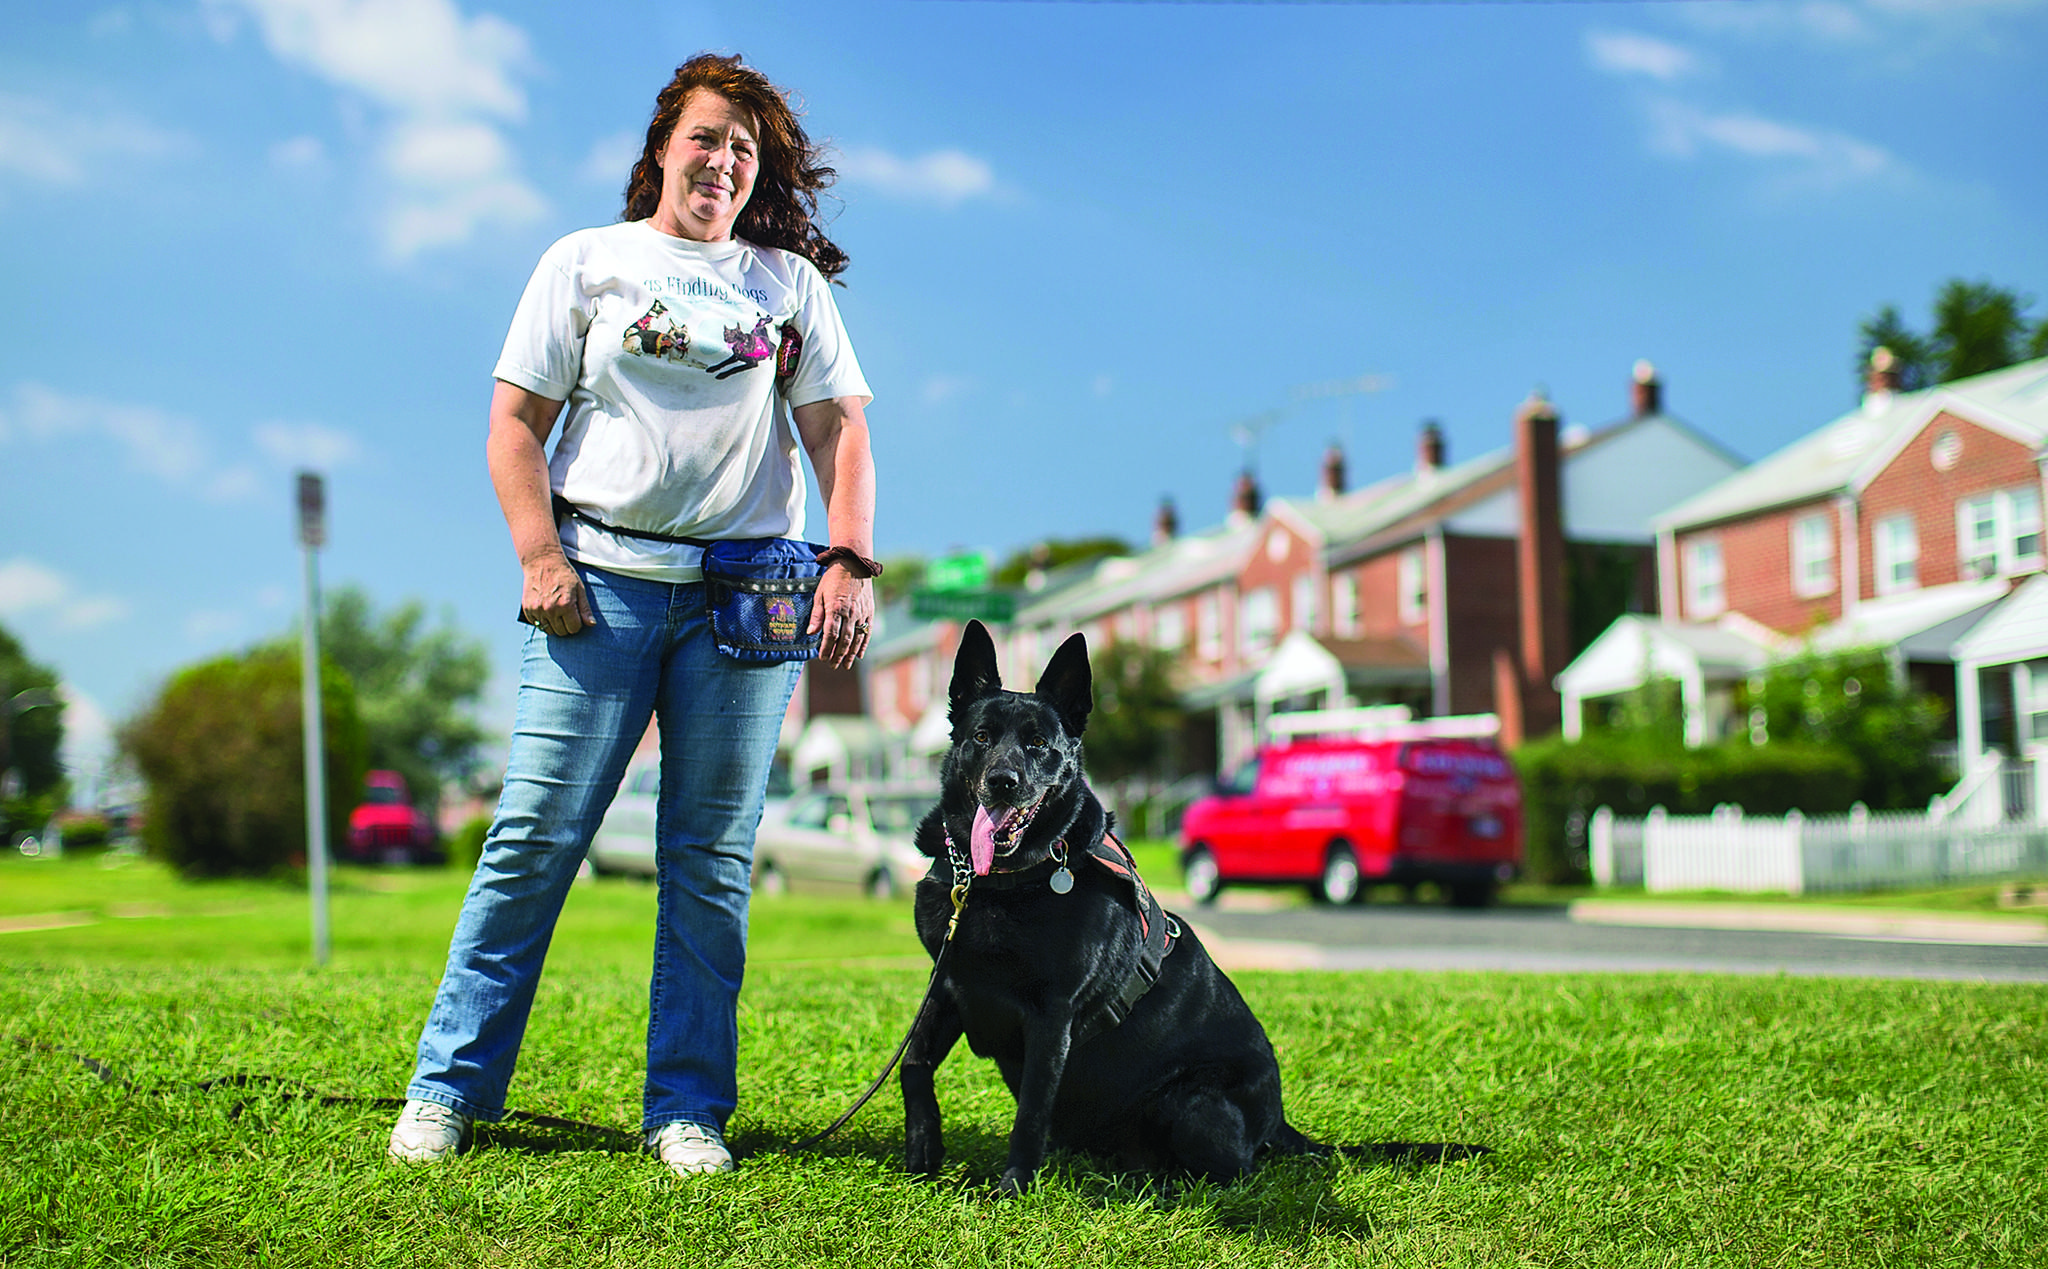 Anne Wills, founder of Dogs Finding Dogs, with Heidi, her German Shepard-Lab mix tracking dog. Dogs Finding Dogs is training Howard County volunteer teams to locate lost pets with trained tracking dogs.